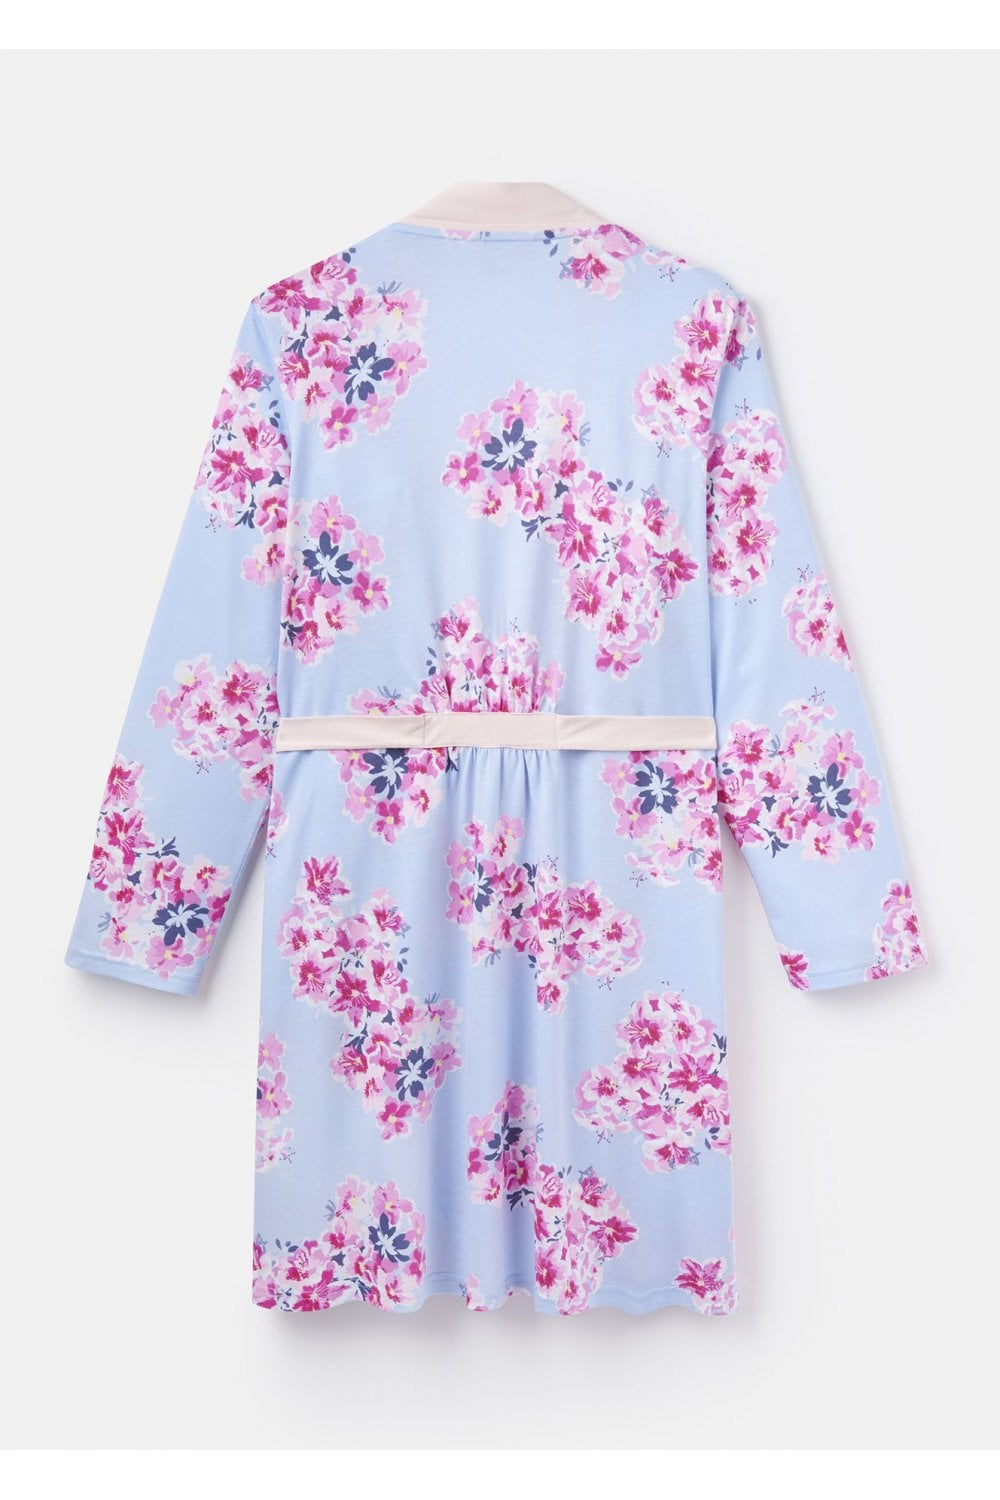 a4ef41850a Joules Womens Jasmine Printed Jersey Dressing Gown - Blue Floral ...